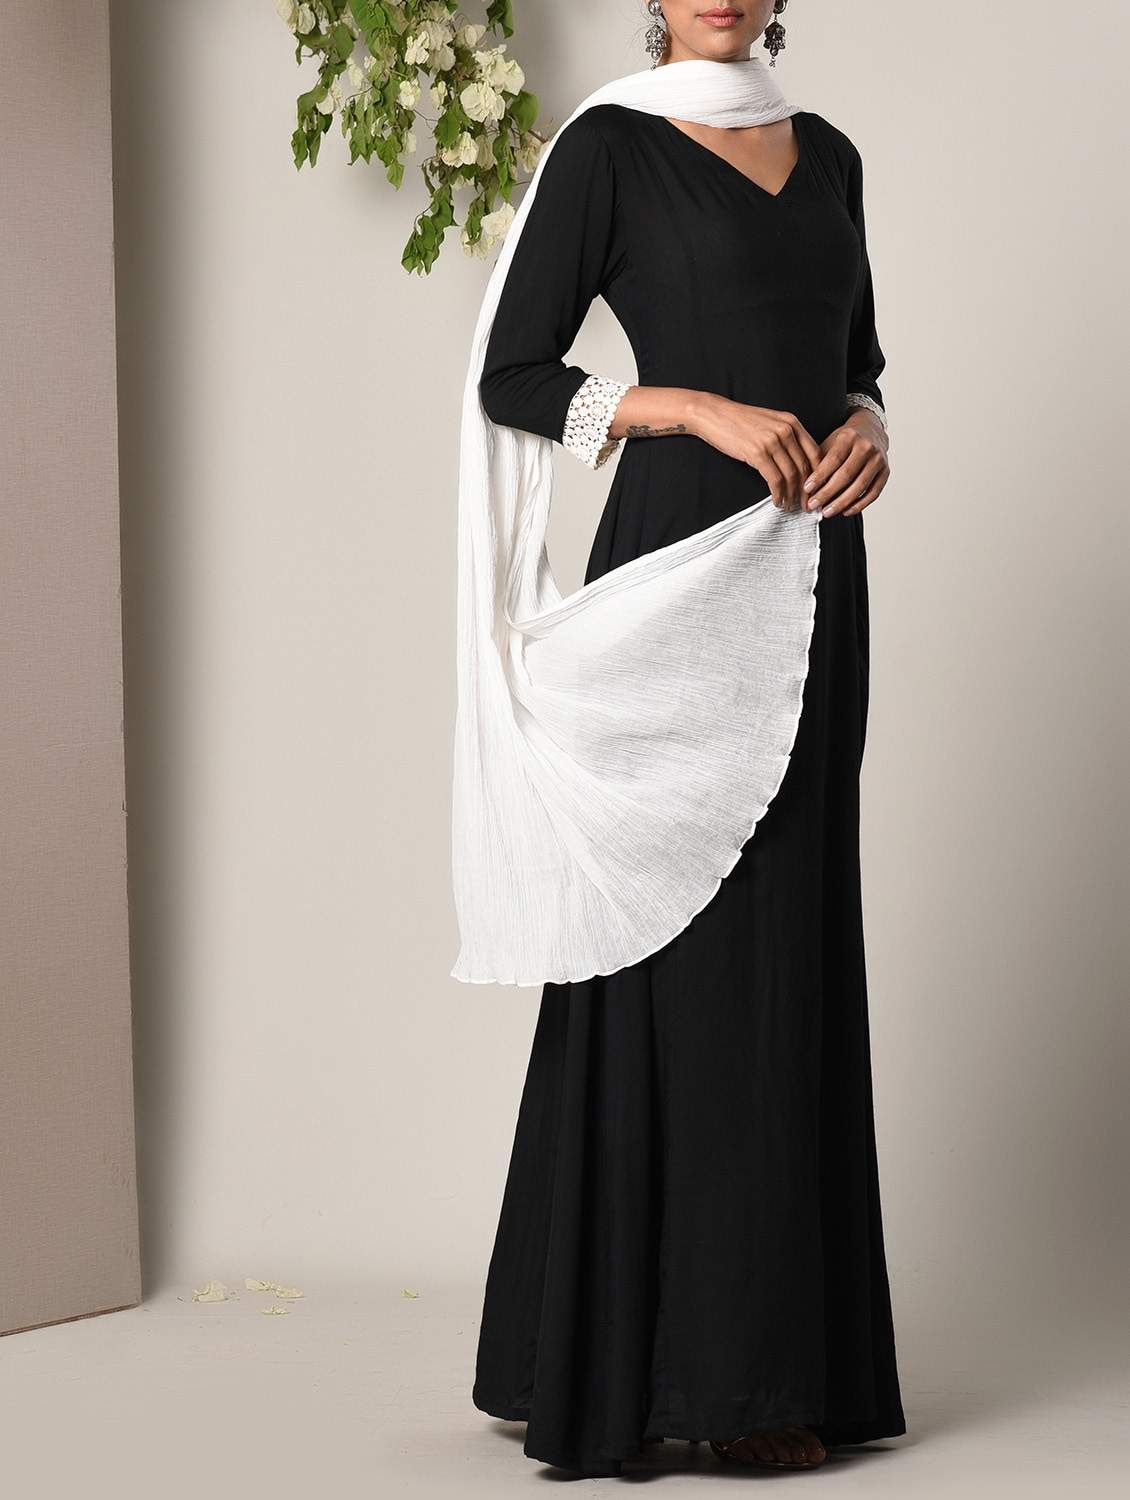 cfab3b681d Buy Black Layered Maxi Dress And Dupatta Set for Women from Truebrowns for  ₹3149 at 10% off